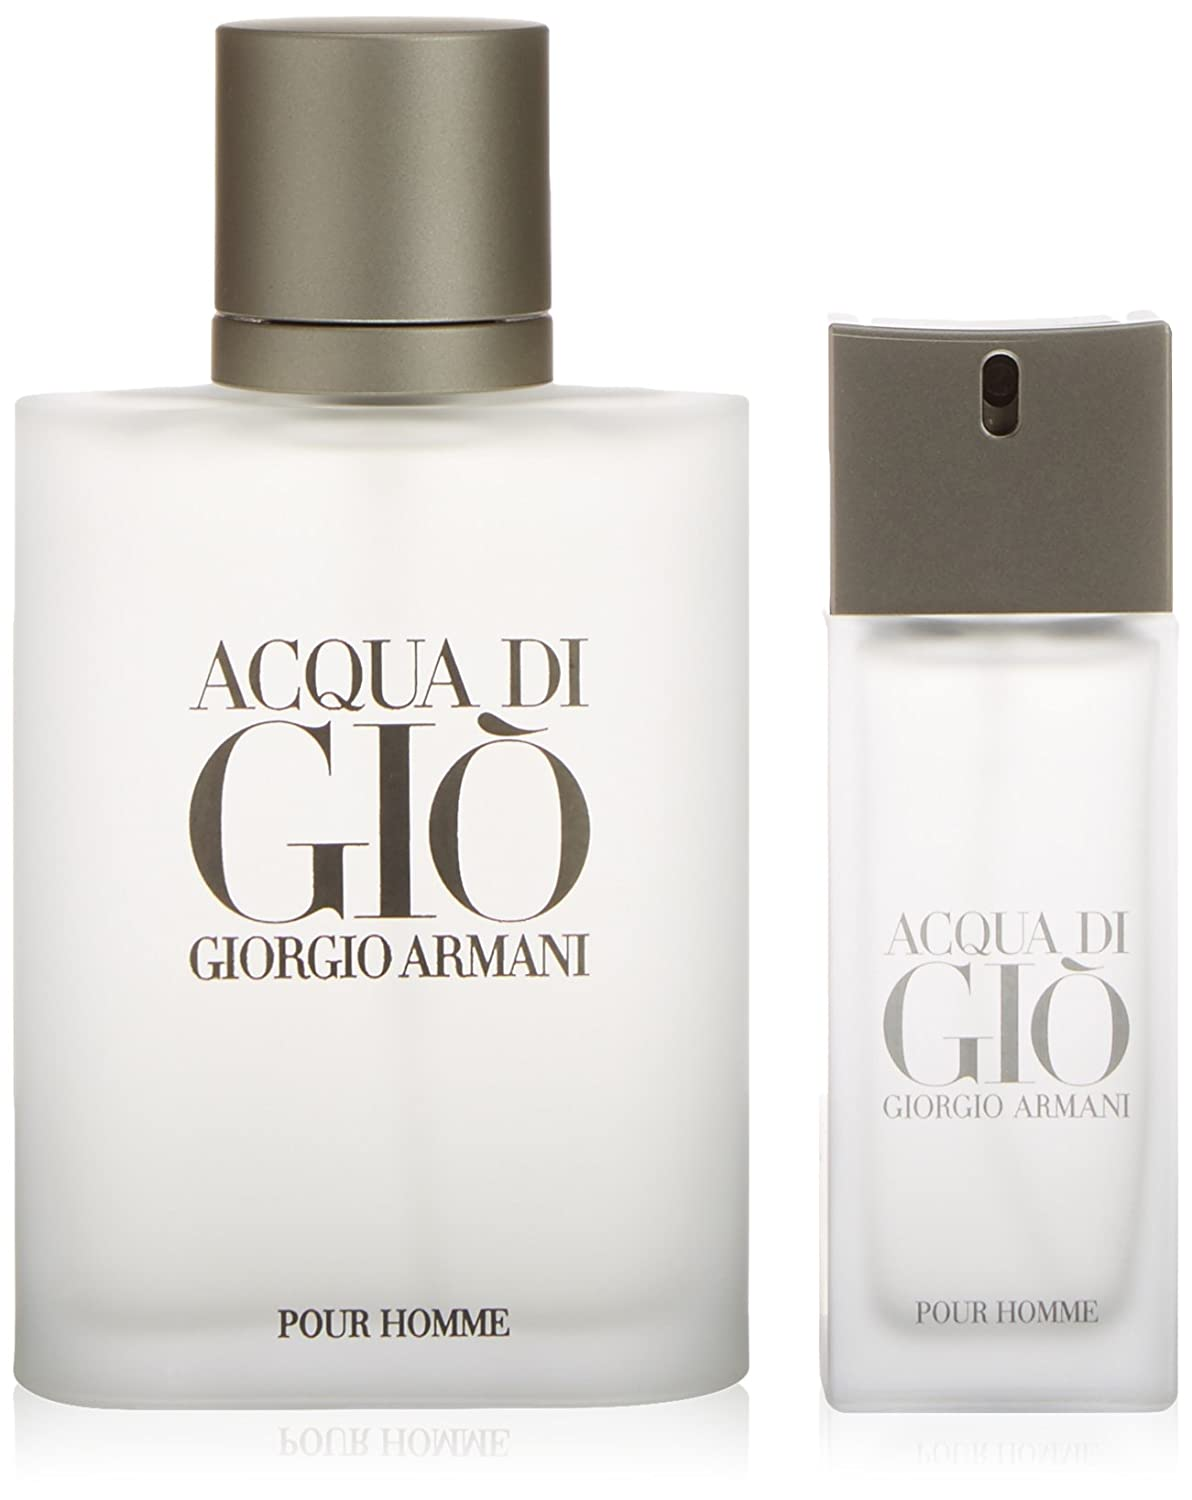 Armani Acqua Di Gio Agua de Colonia + Agua de Colonia Mini - 1 Pack: Amazon.es